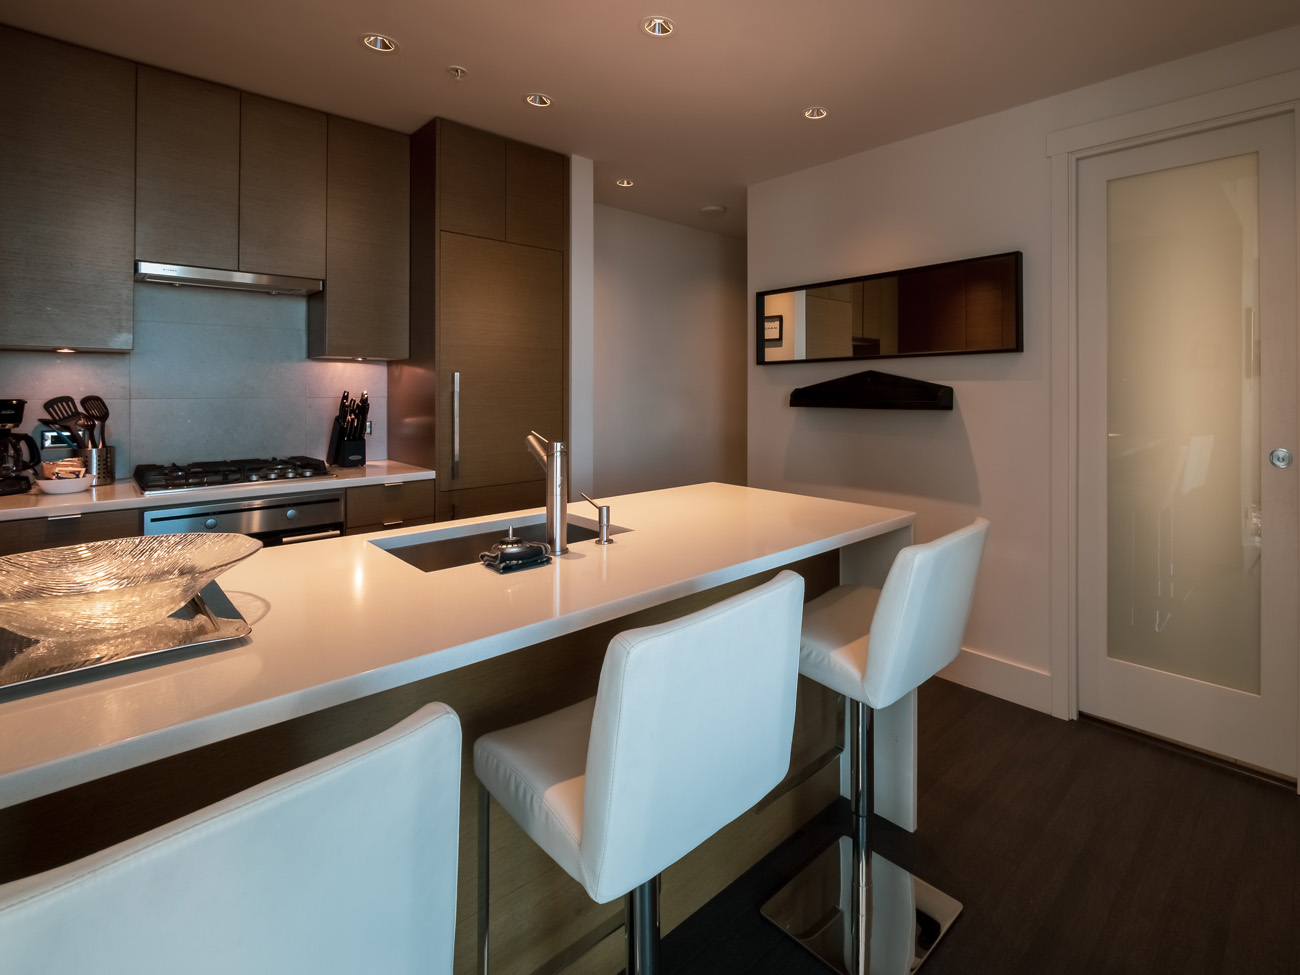 kitchen bar seating Promontory high rise condo Victoria